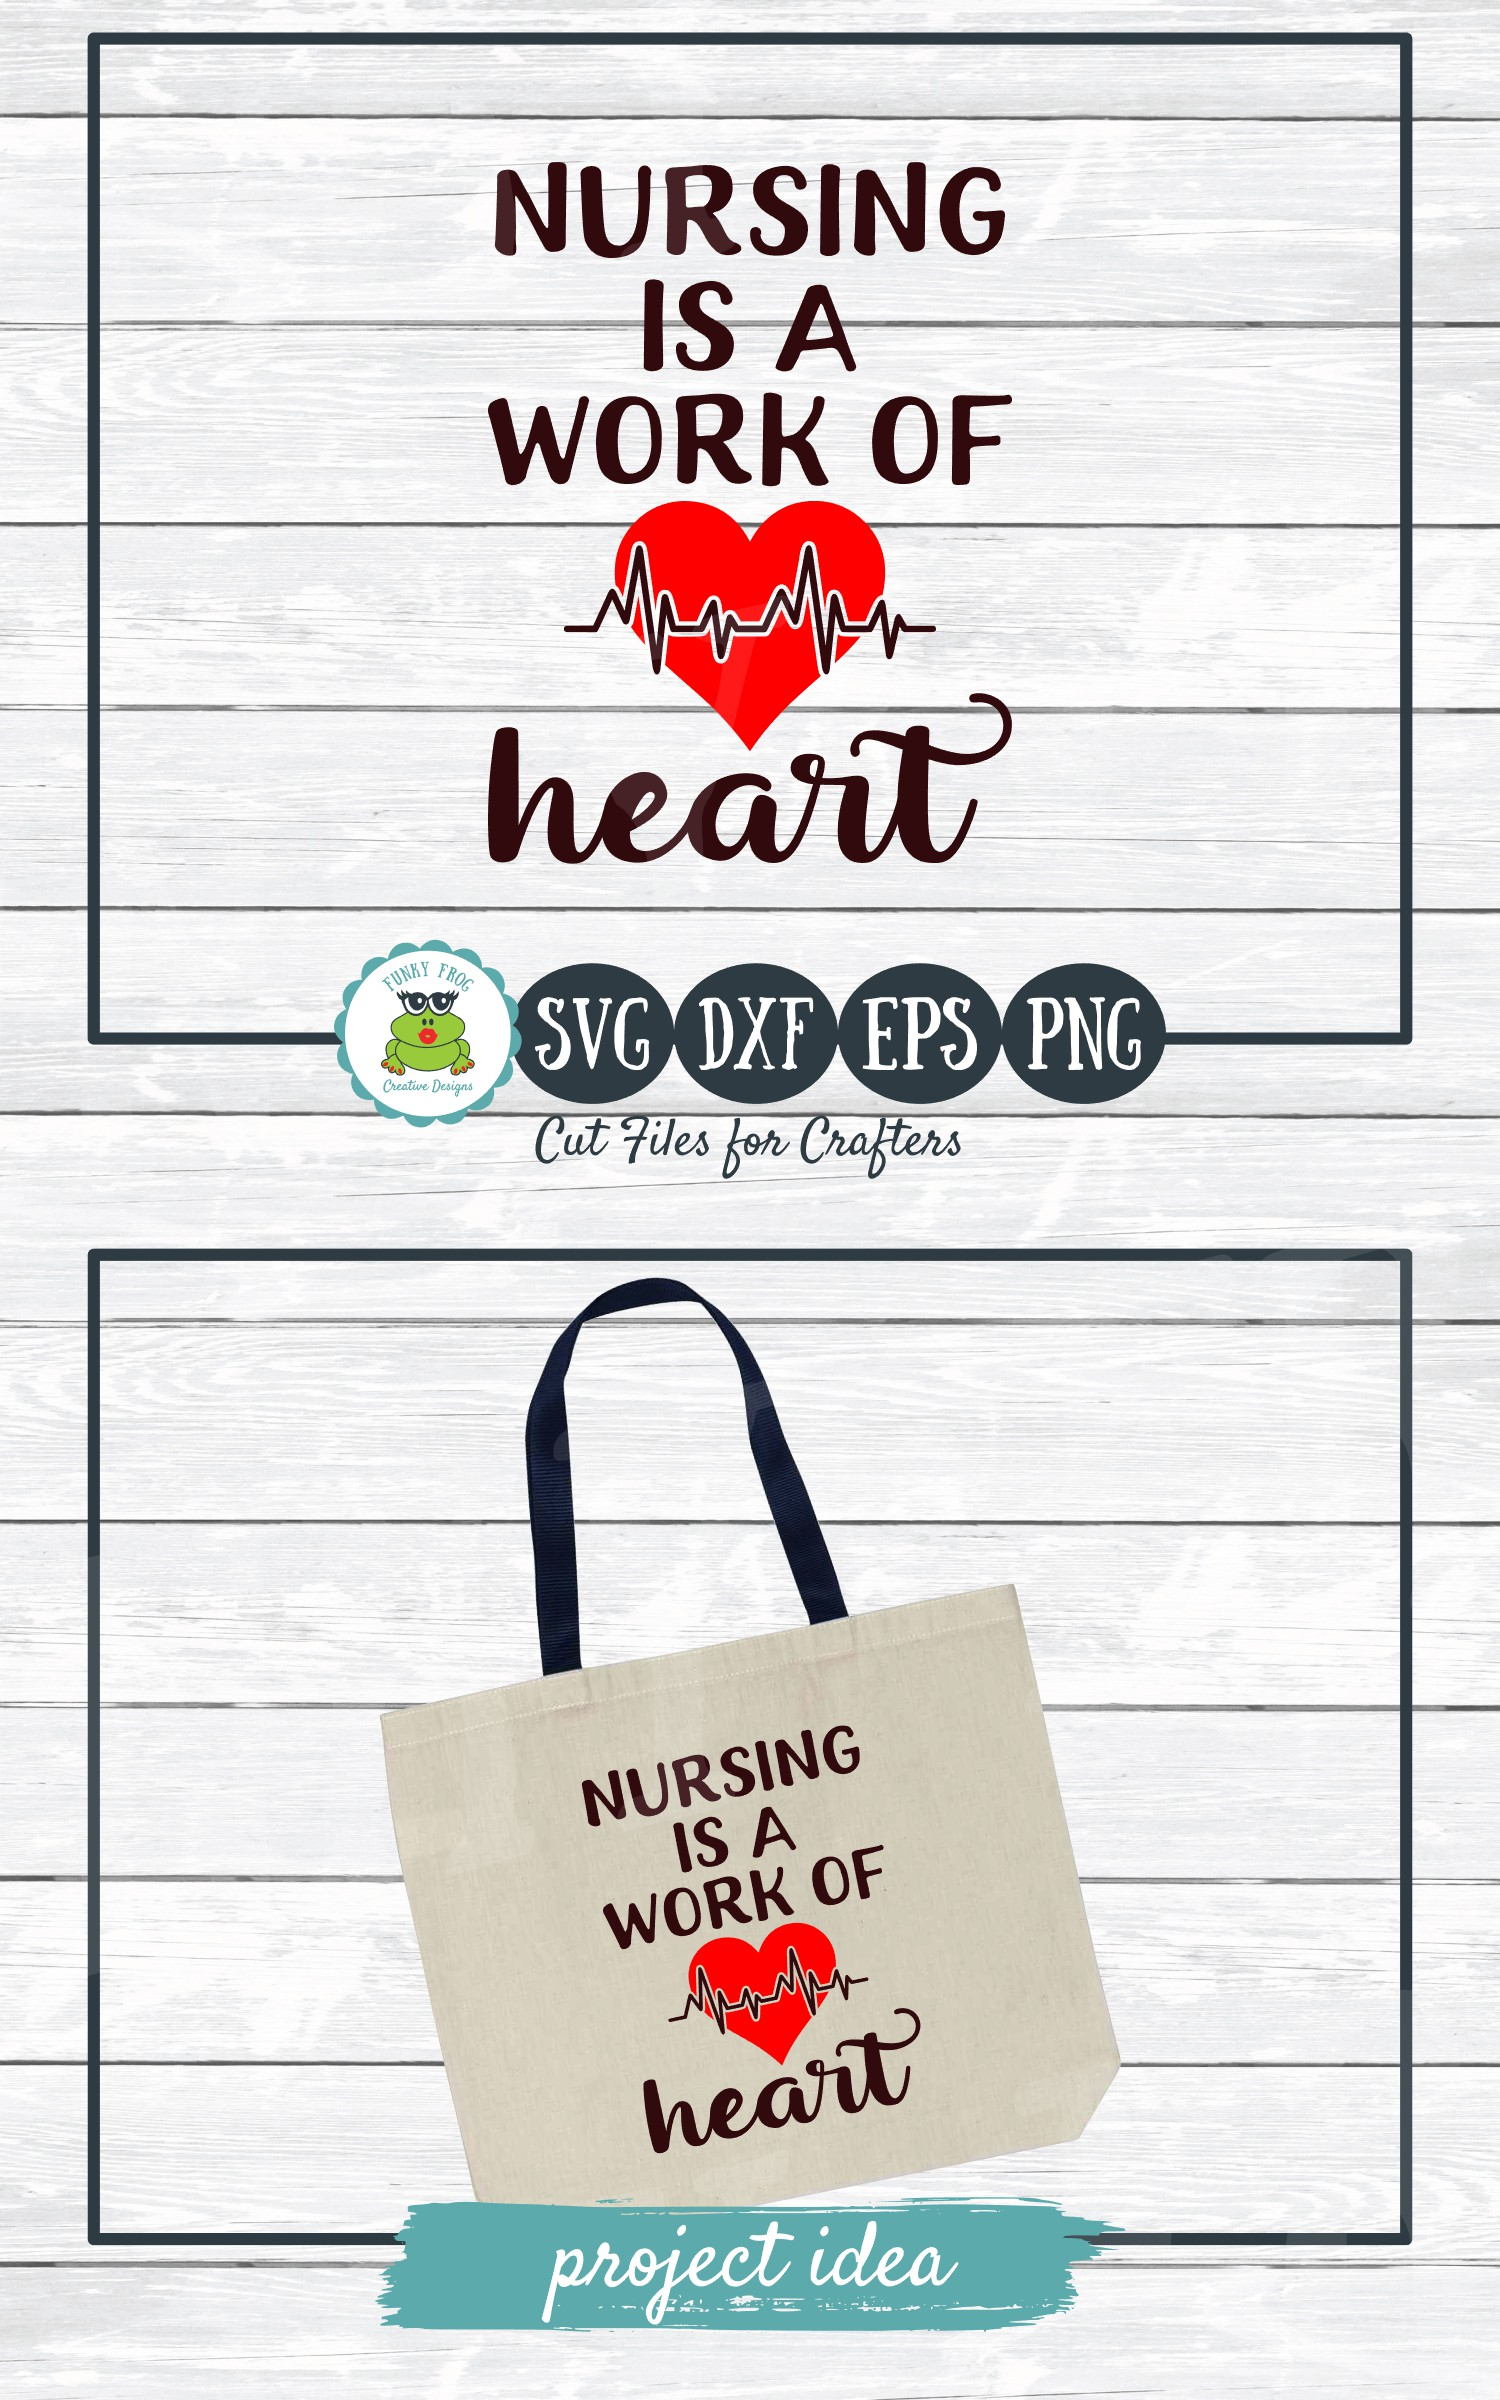 Nursing is a Work of Heart SVG Cut File for Crafters example image 3